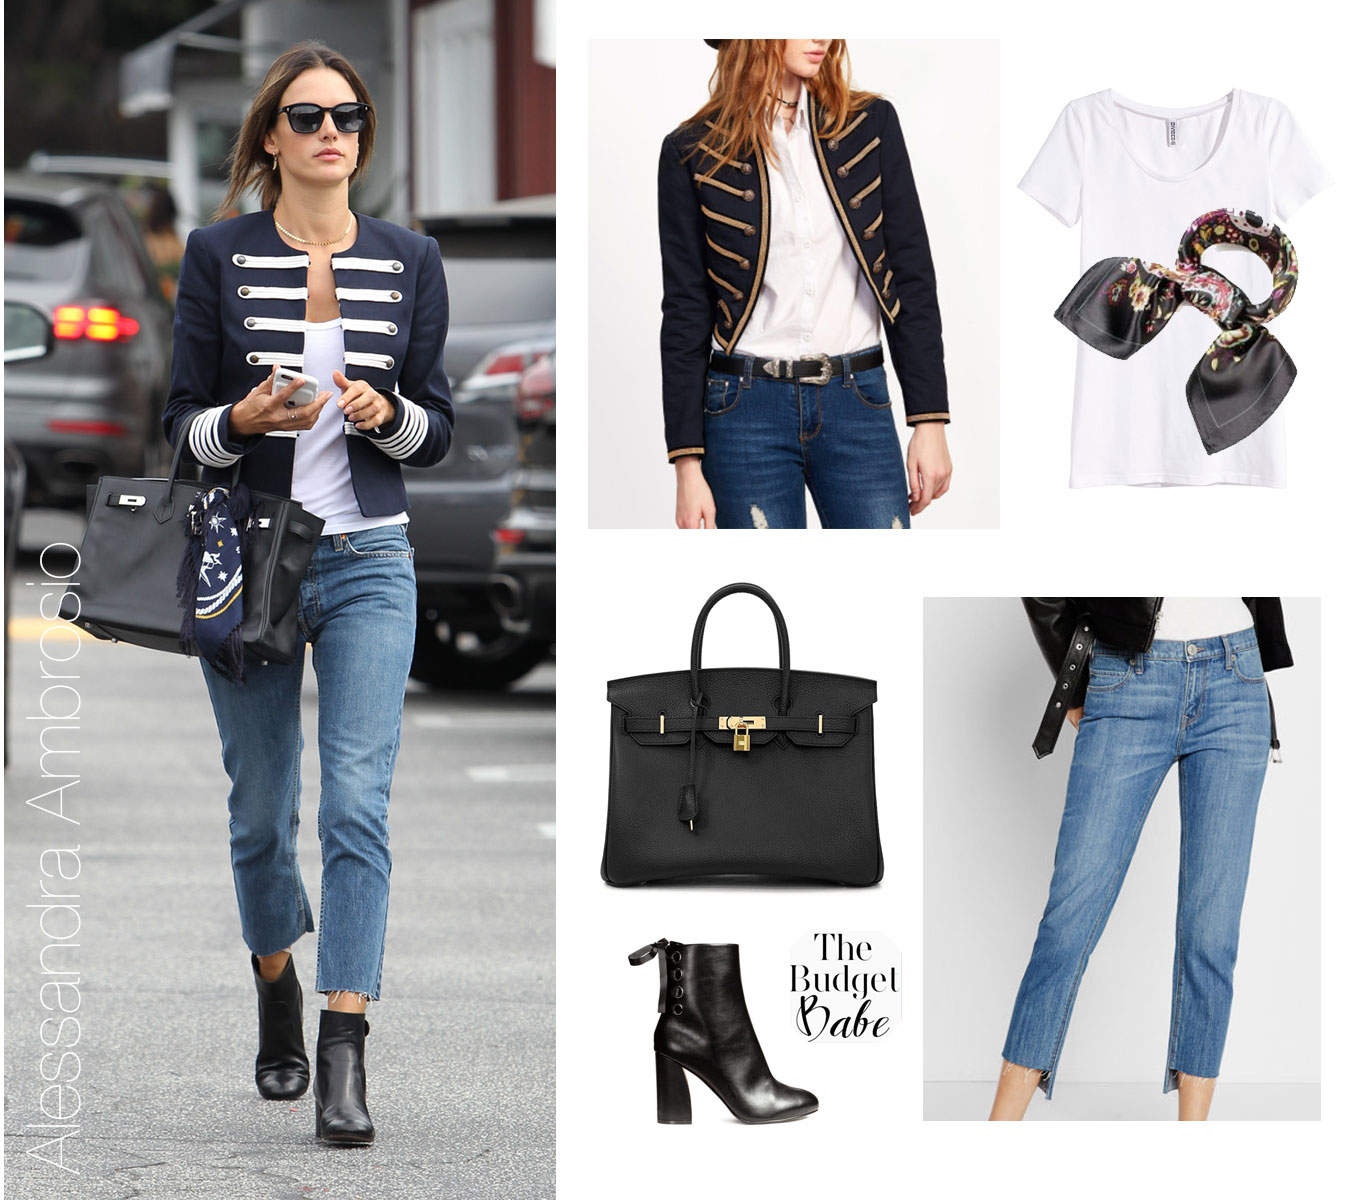 Alessandra Ambrosio wears a military band jacket with fray edge jeans and black ankle boots.